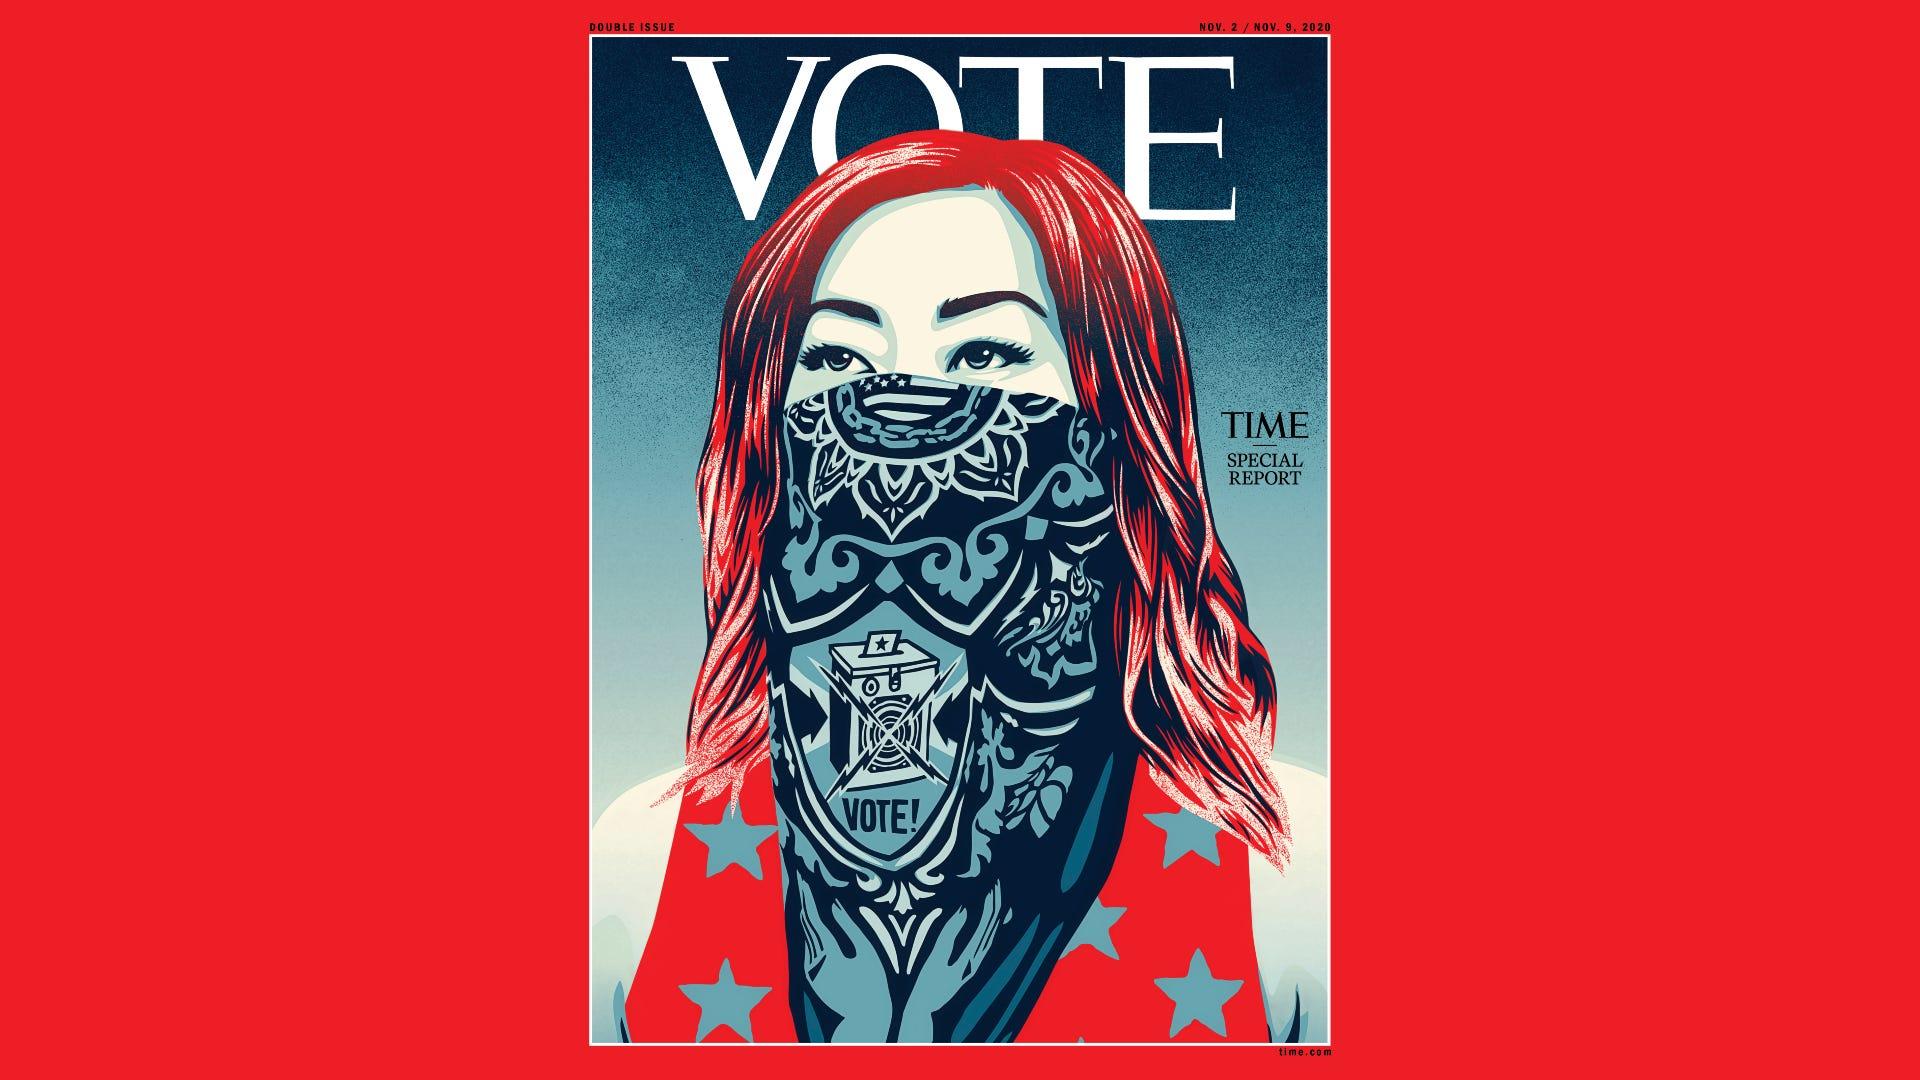 For the first time ever, Time magazine removes logo on cover, replaces it with a plea to 'Vote'